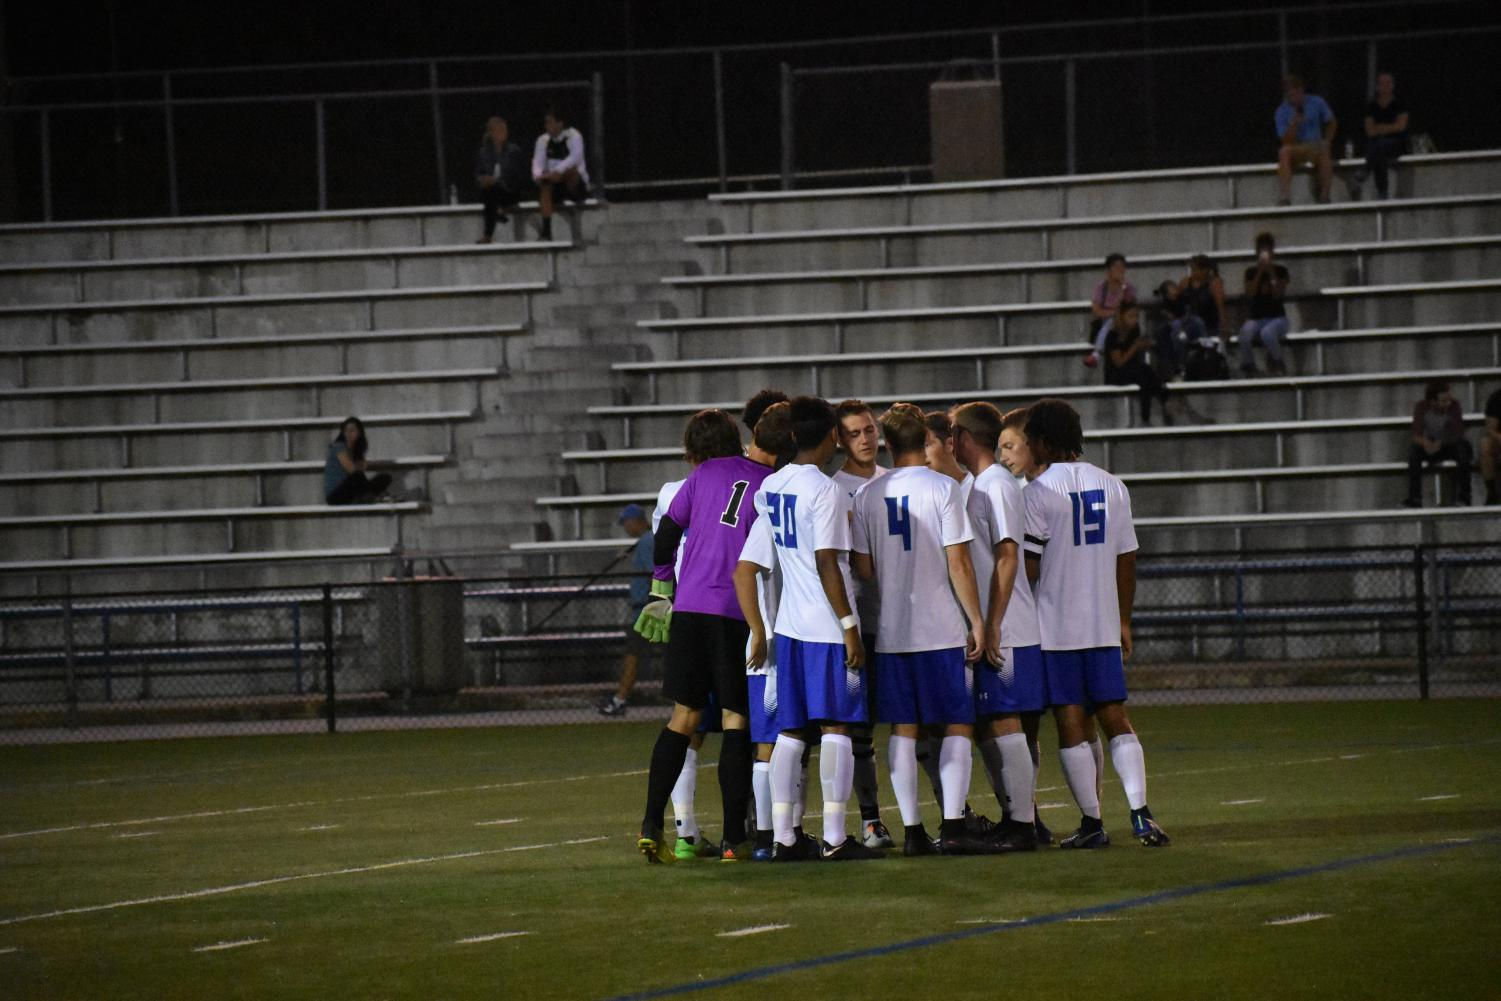 Men's Soccer players huddle before a game. Photo by Sarah Alonso